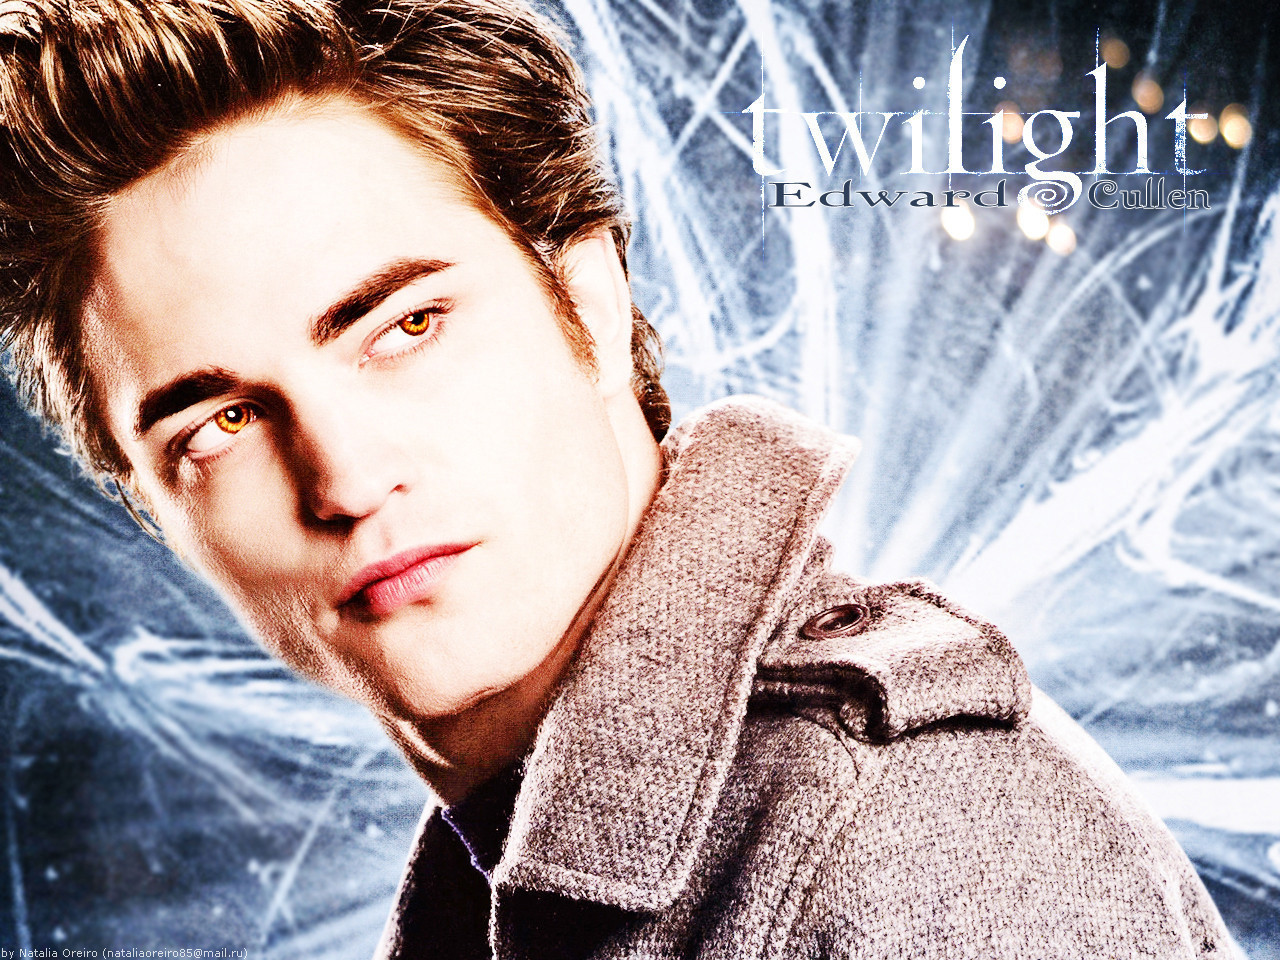 Edward cullen twilight series wallpaper 6700287 fanpop for Twilight edward photos